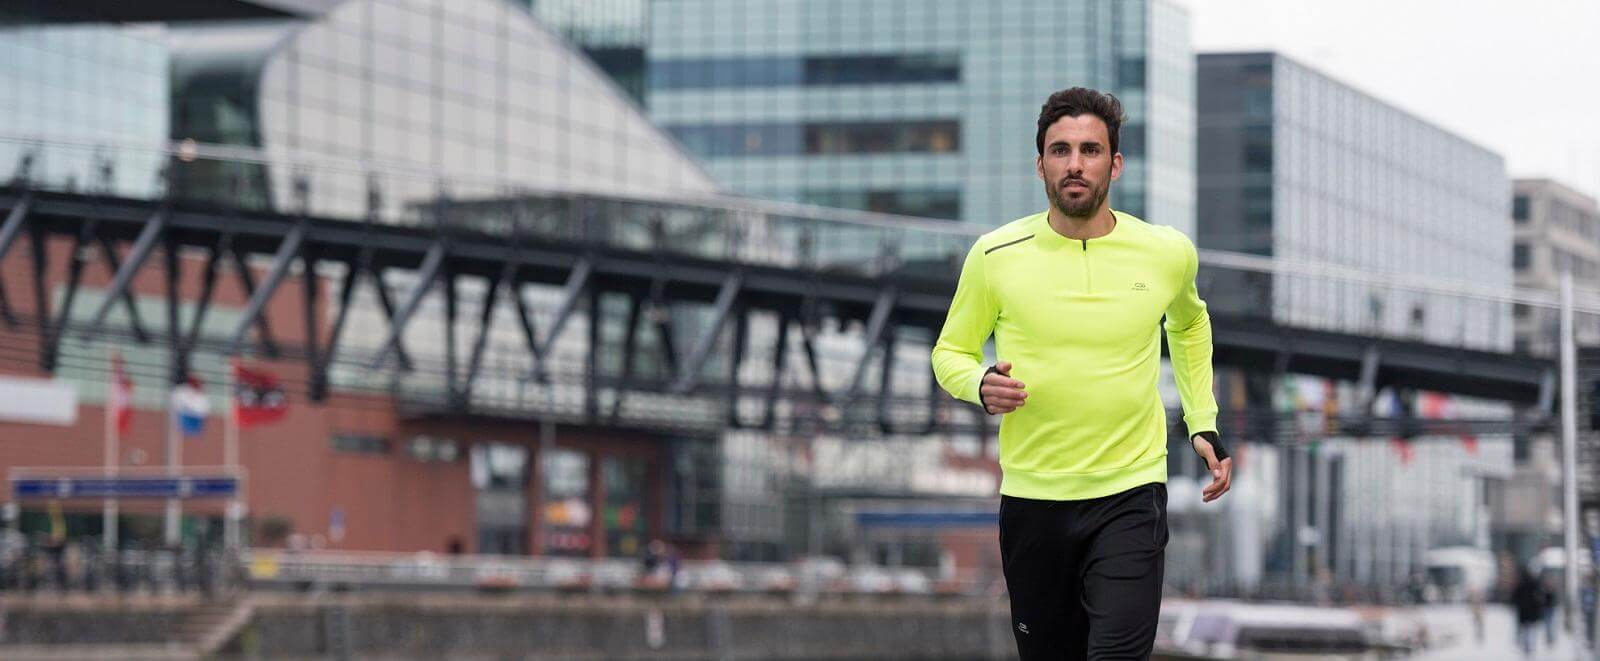 4 Ways to Extend the Time You Spend Running | Blog Decathlon